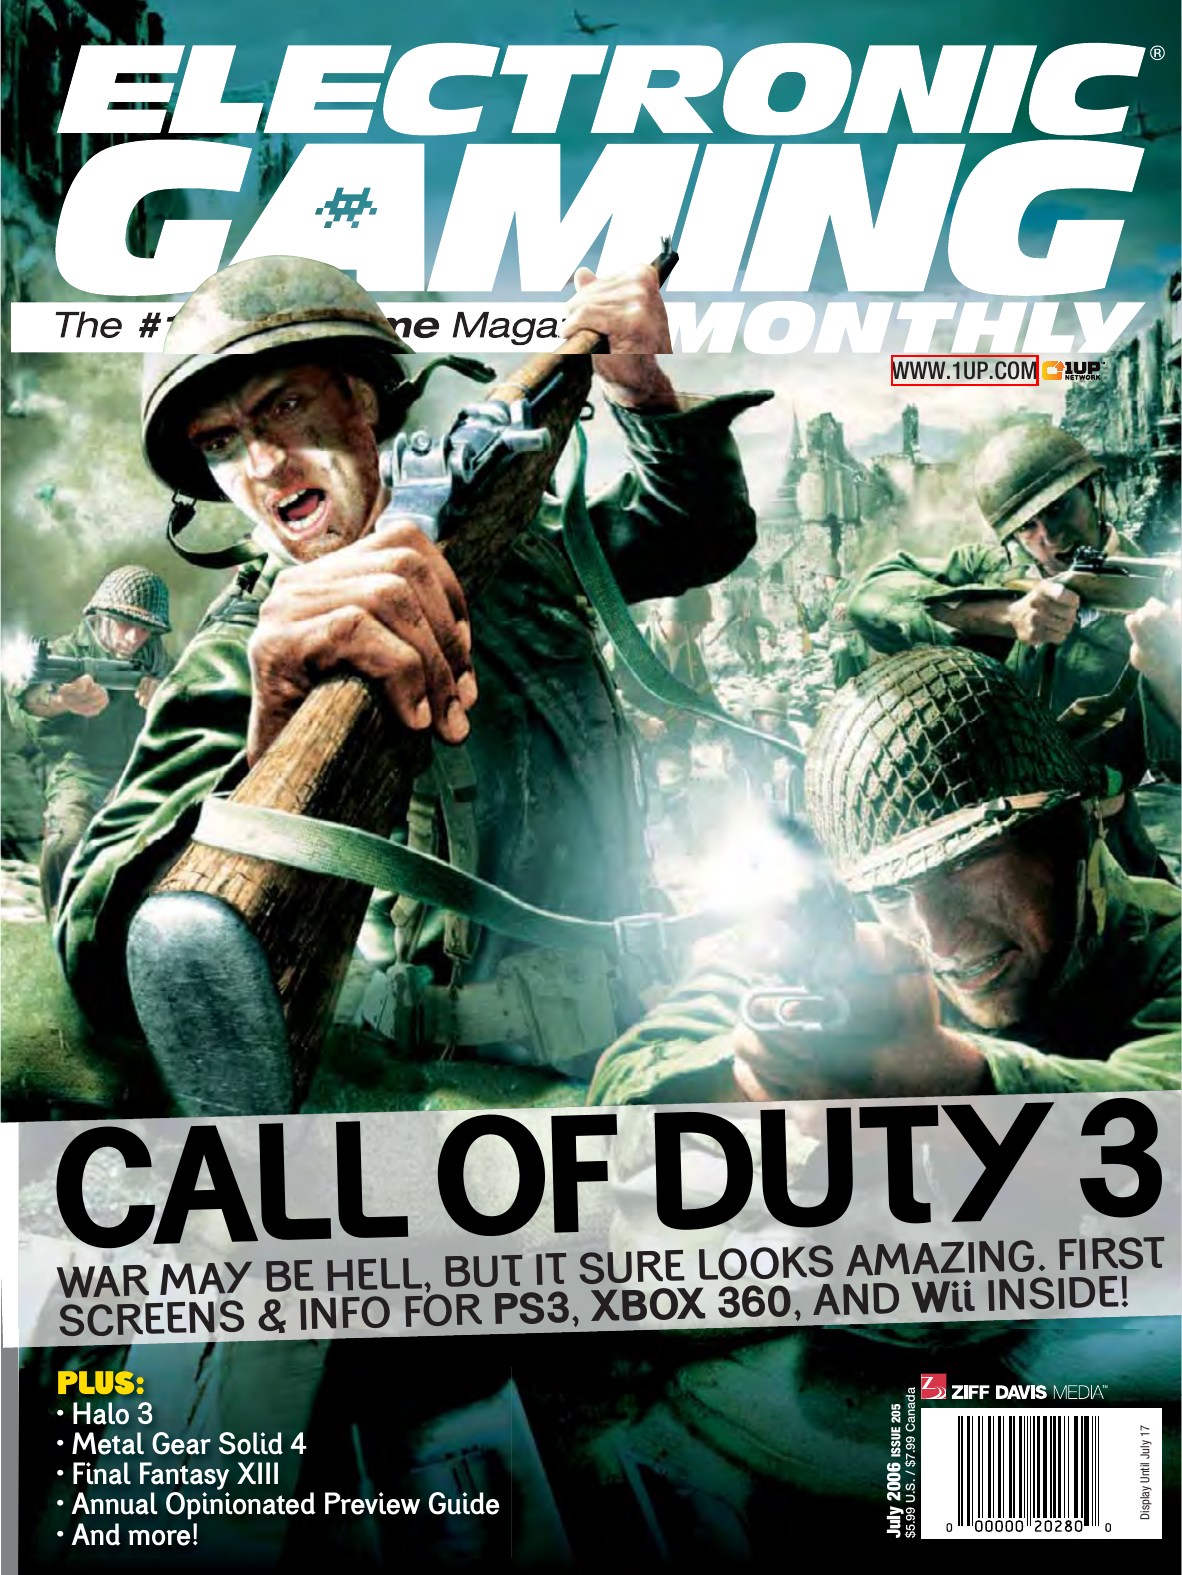 Electronic Gaming (July) Issue 205(2006).pdf